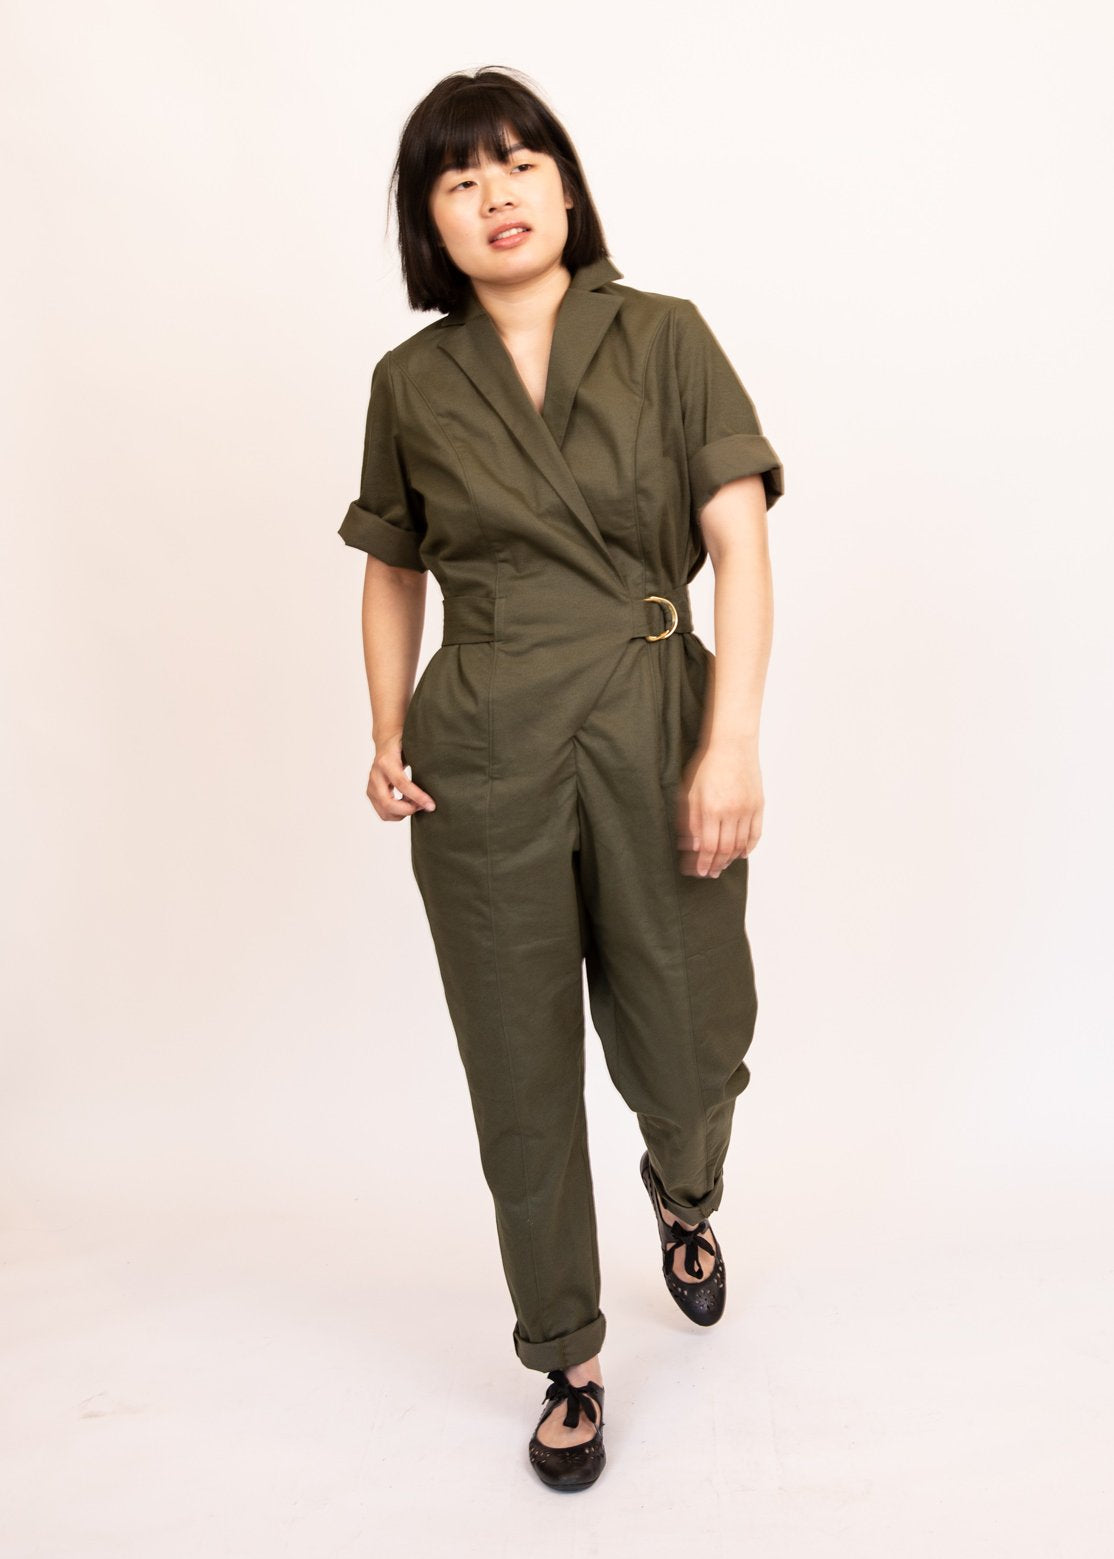 Wrap style boiler suit jumpsuit in olive green